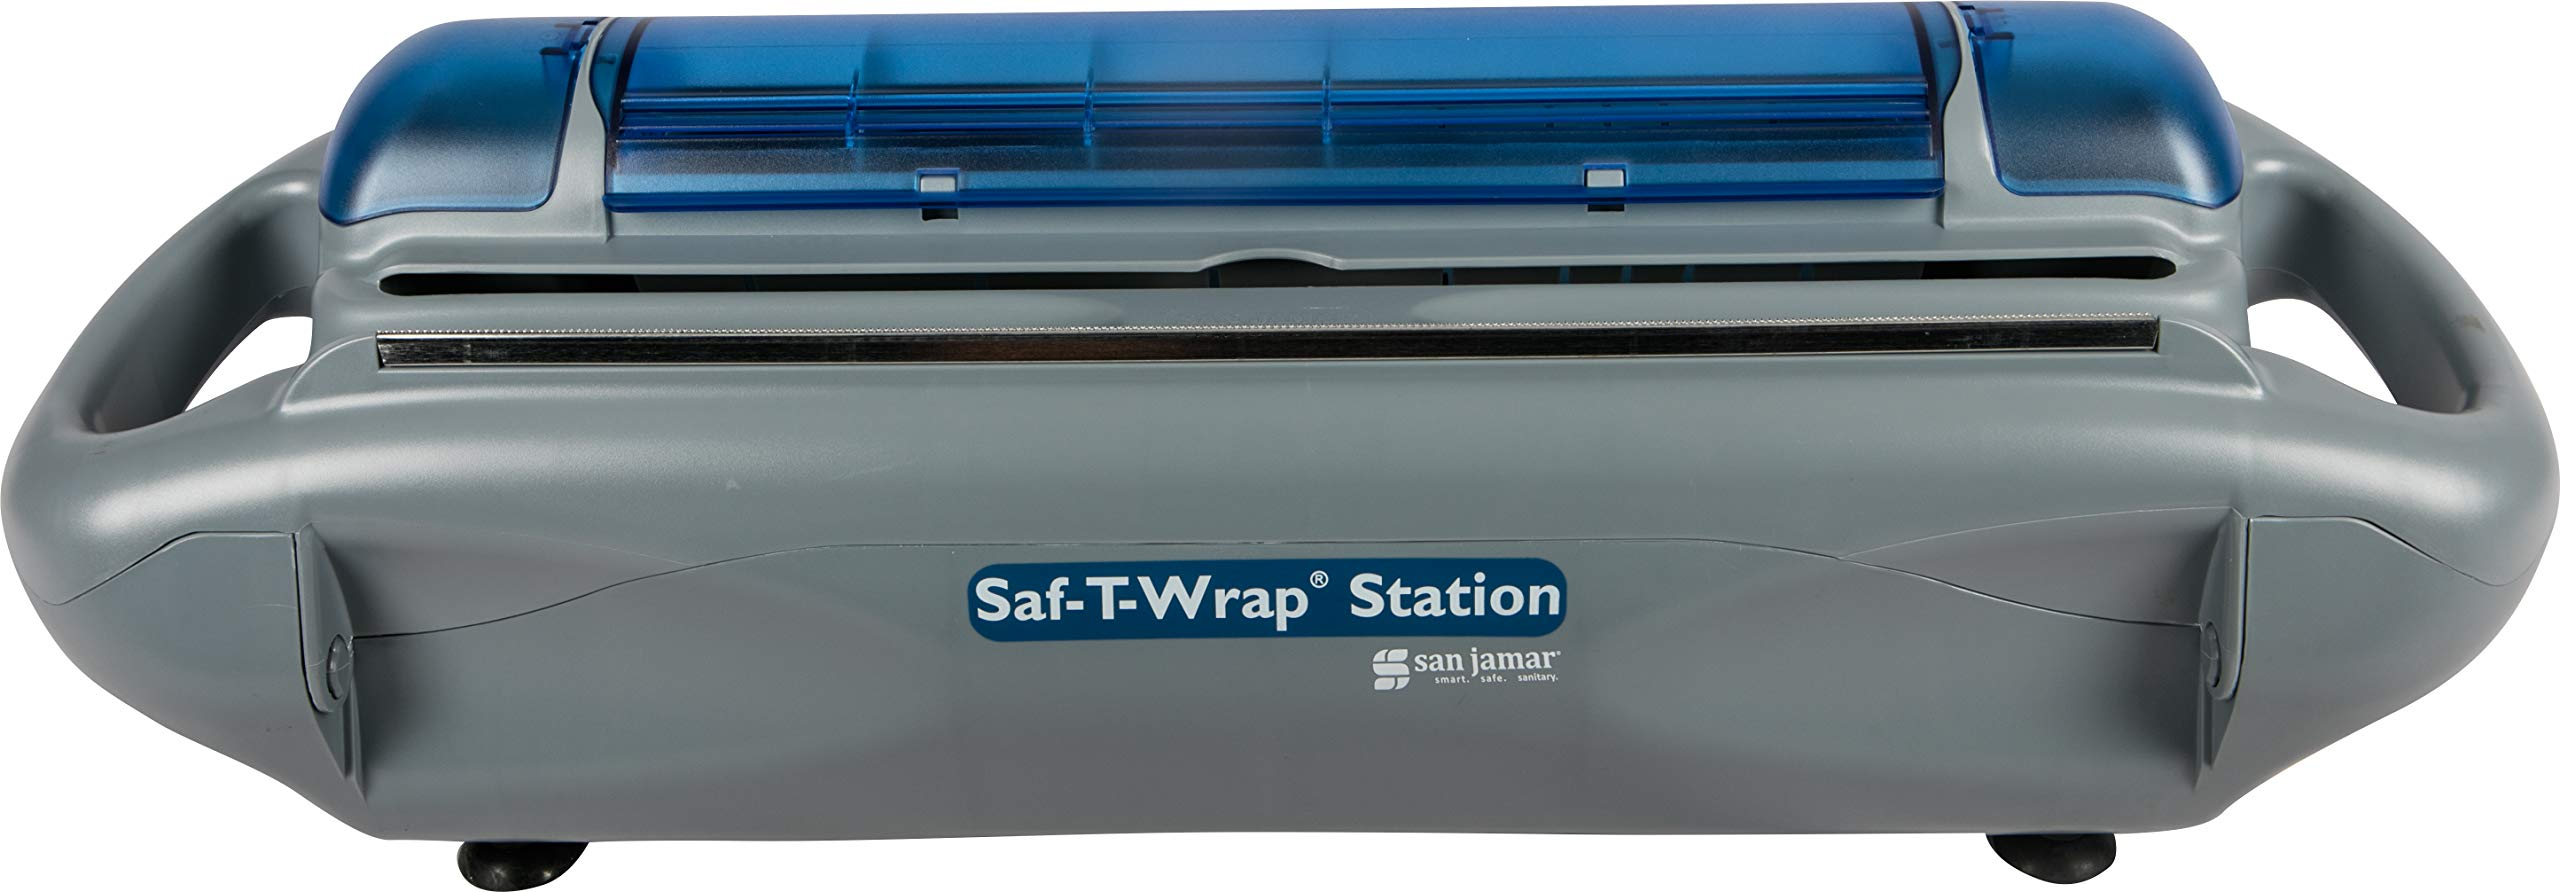 San Jamar SW1218 Saf-T-Wrap Station, Gray, for 12-18''w x 5 1/10''dia Rolls